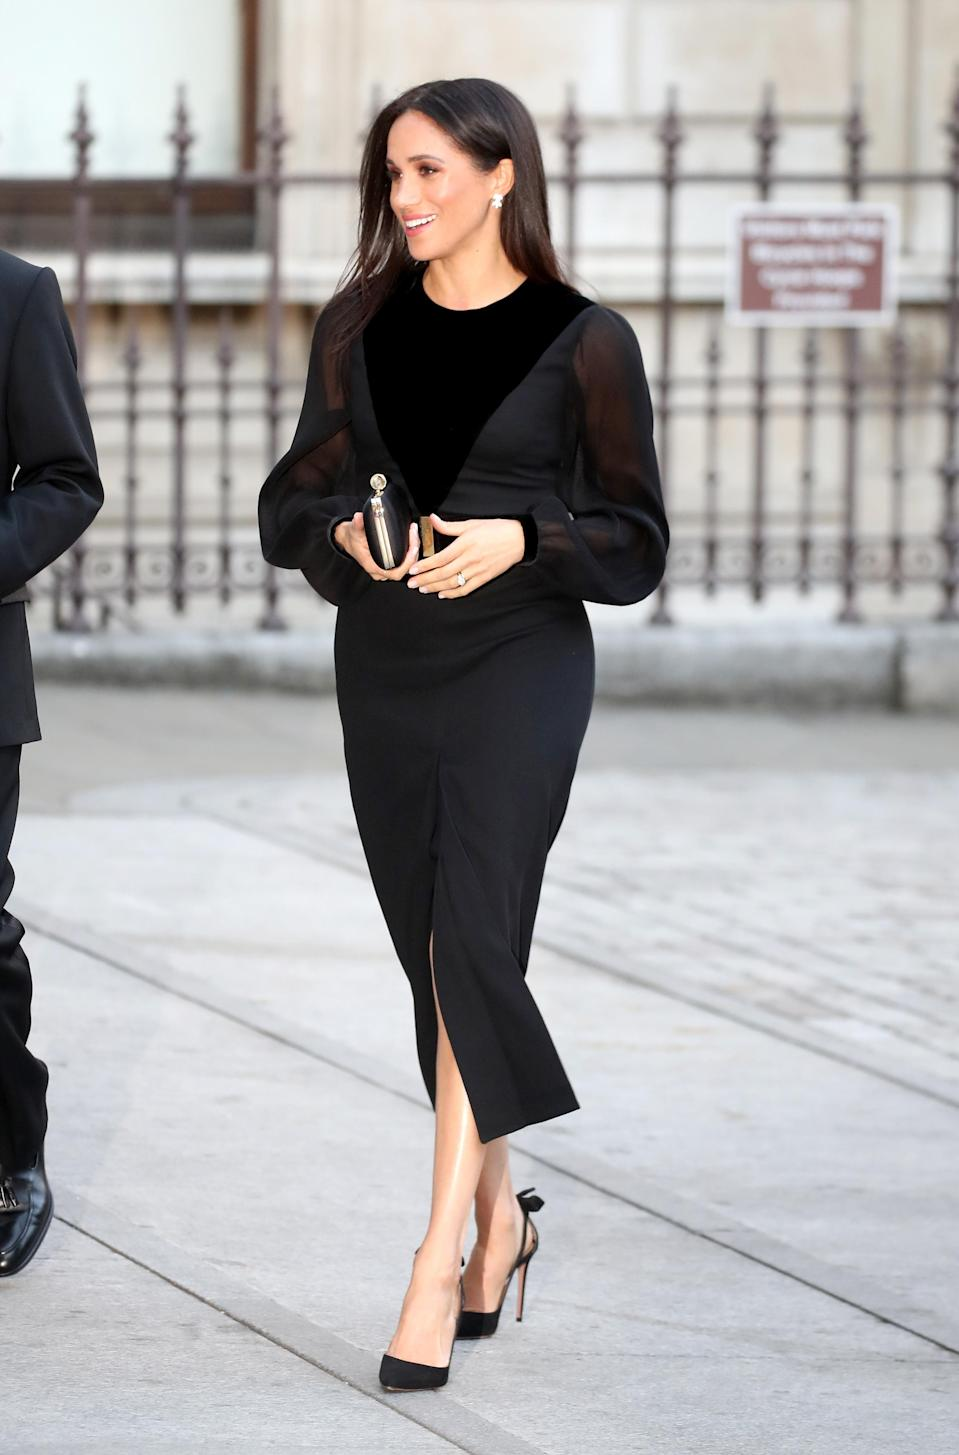 <p>Meghan Markle opened 'Oceania' at Royal Academy of Arts on September 25, marking her first solo outing since becoming a royal. For the occassion, the Duchess wore a two-tone, sheer black Givenchy dress with billowing sleeves and her favourite Aquazzura heels. <em>[Photo: Getty]</em> </p>